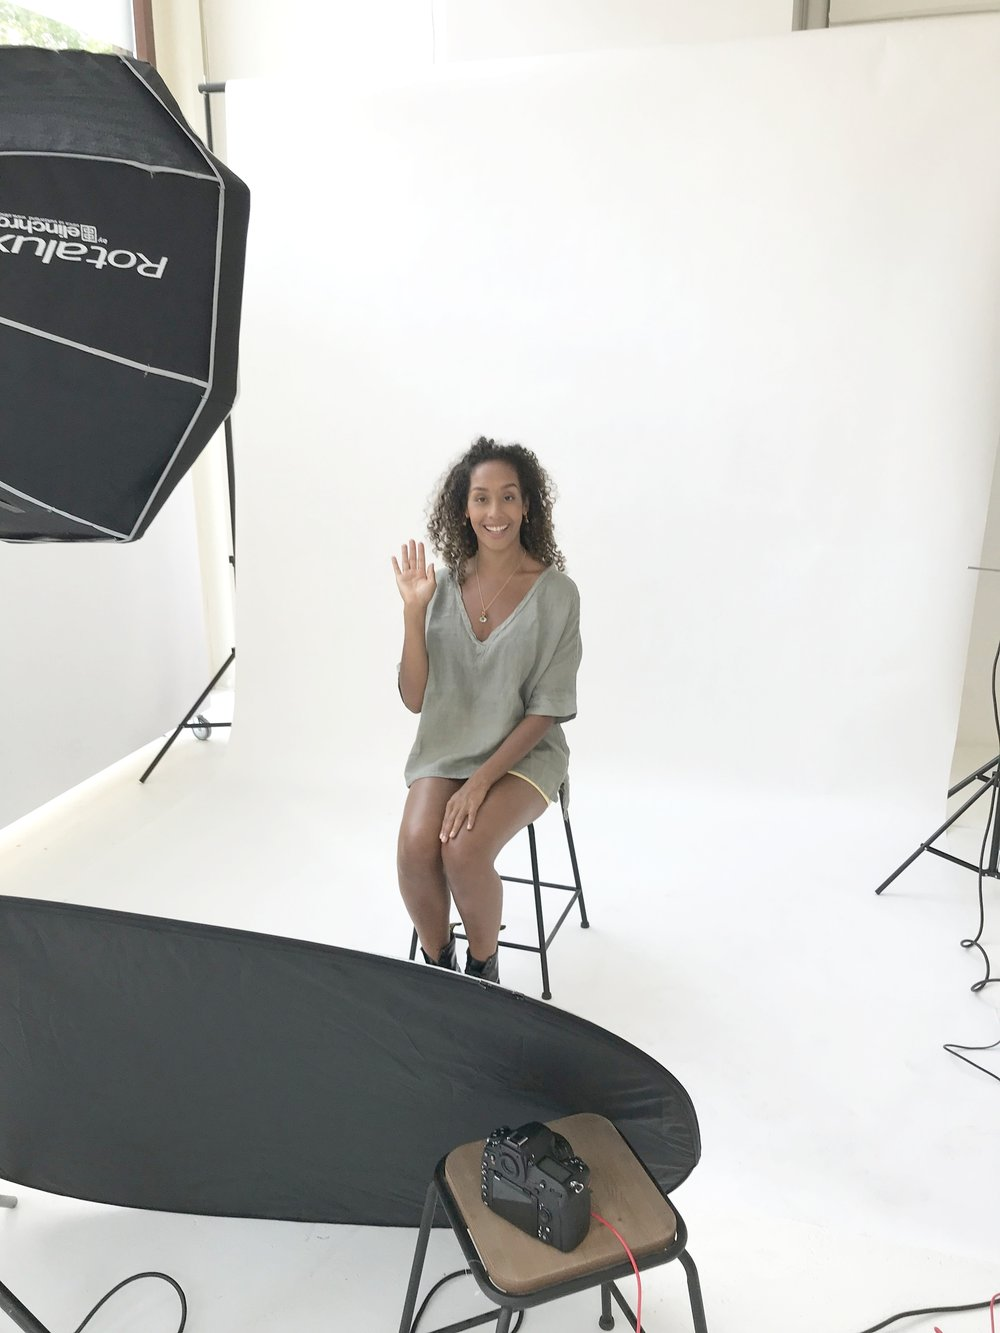 Studio Space - We have a large natural light studio for rent with a variety of backdrops, lights and coffee.Learn More